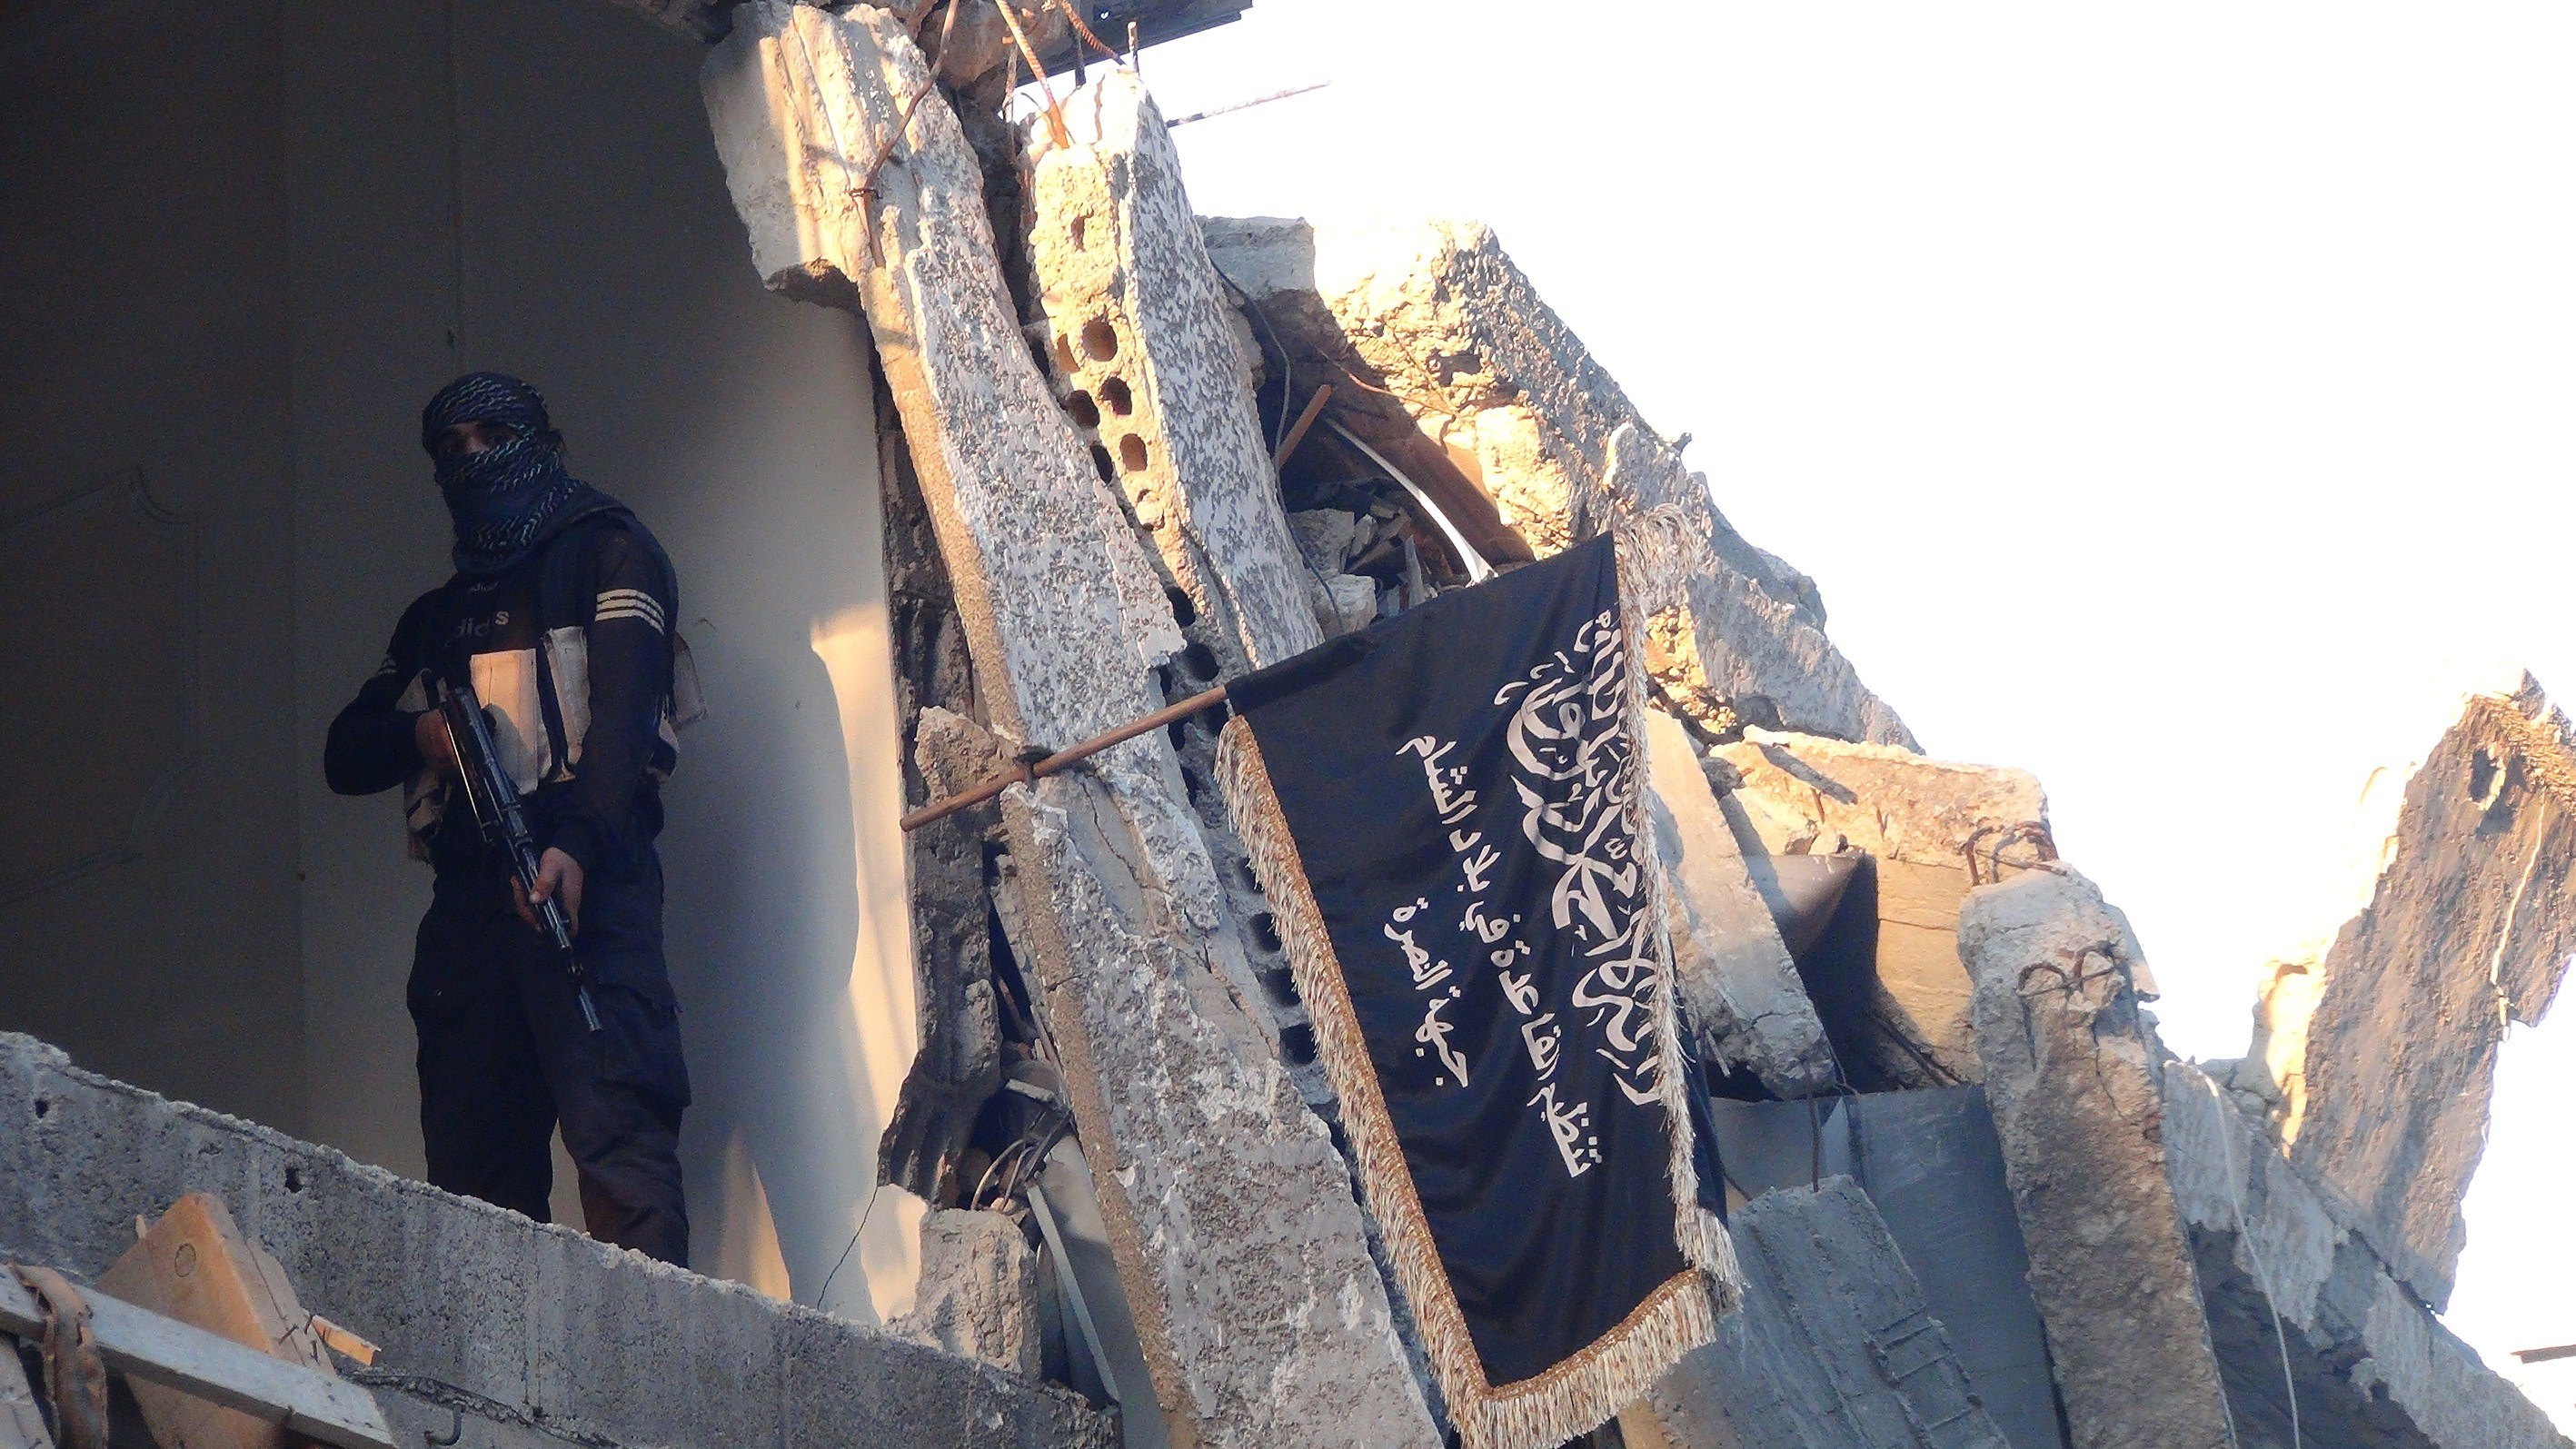 Mississippians Charged With Trying to Join ISIS